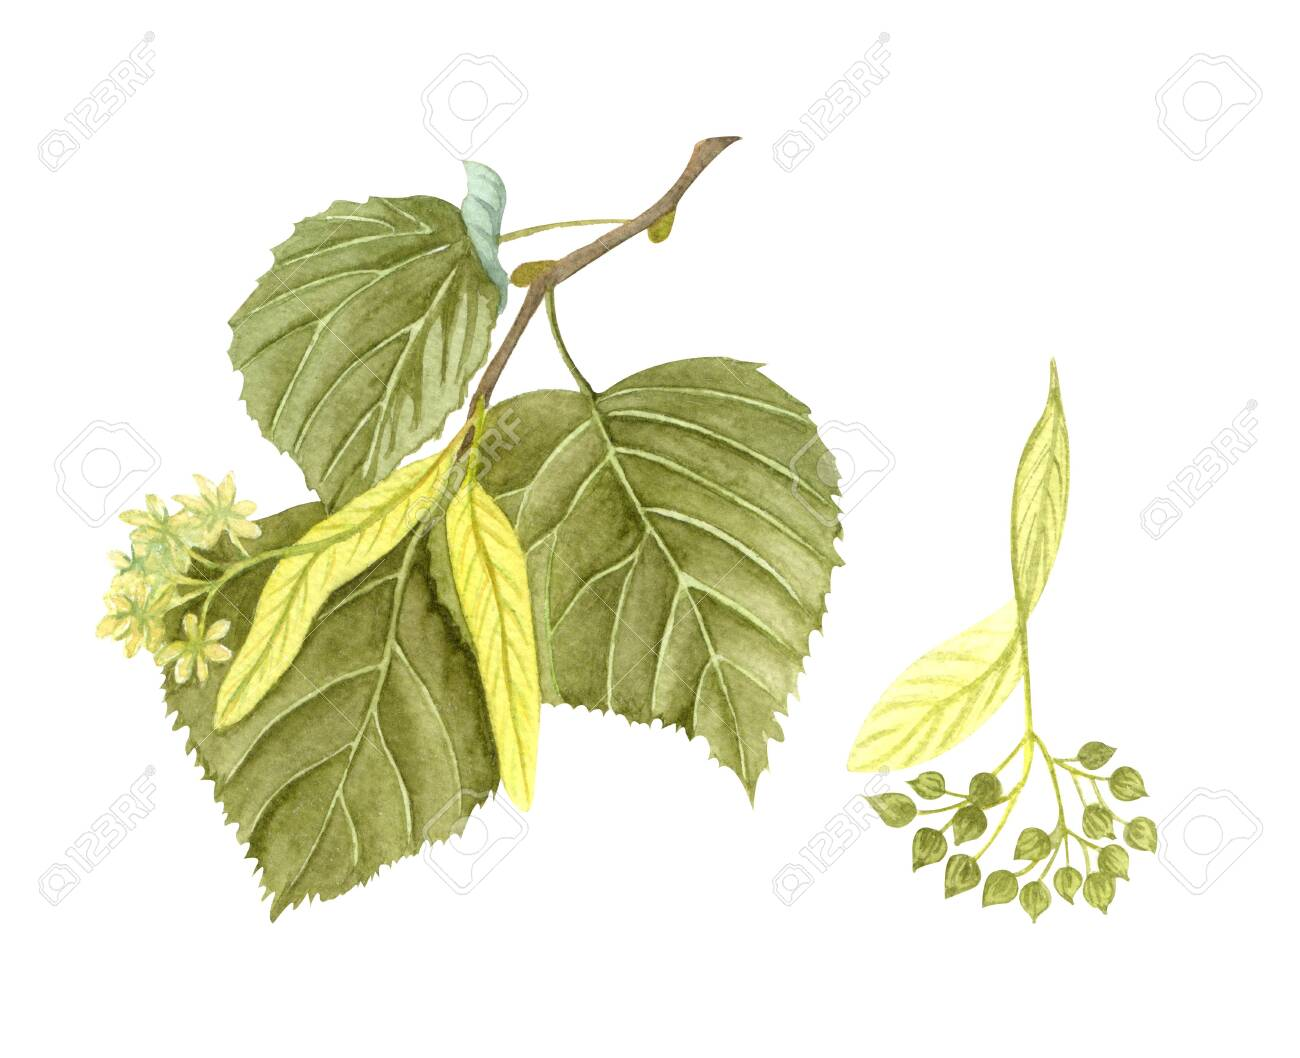 Watercolor blossoming linden twig with leaves, flowers and seeds. Hand painted floral illustration isolated on white background. Honey herb. - 146205089